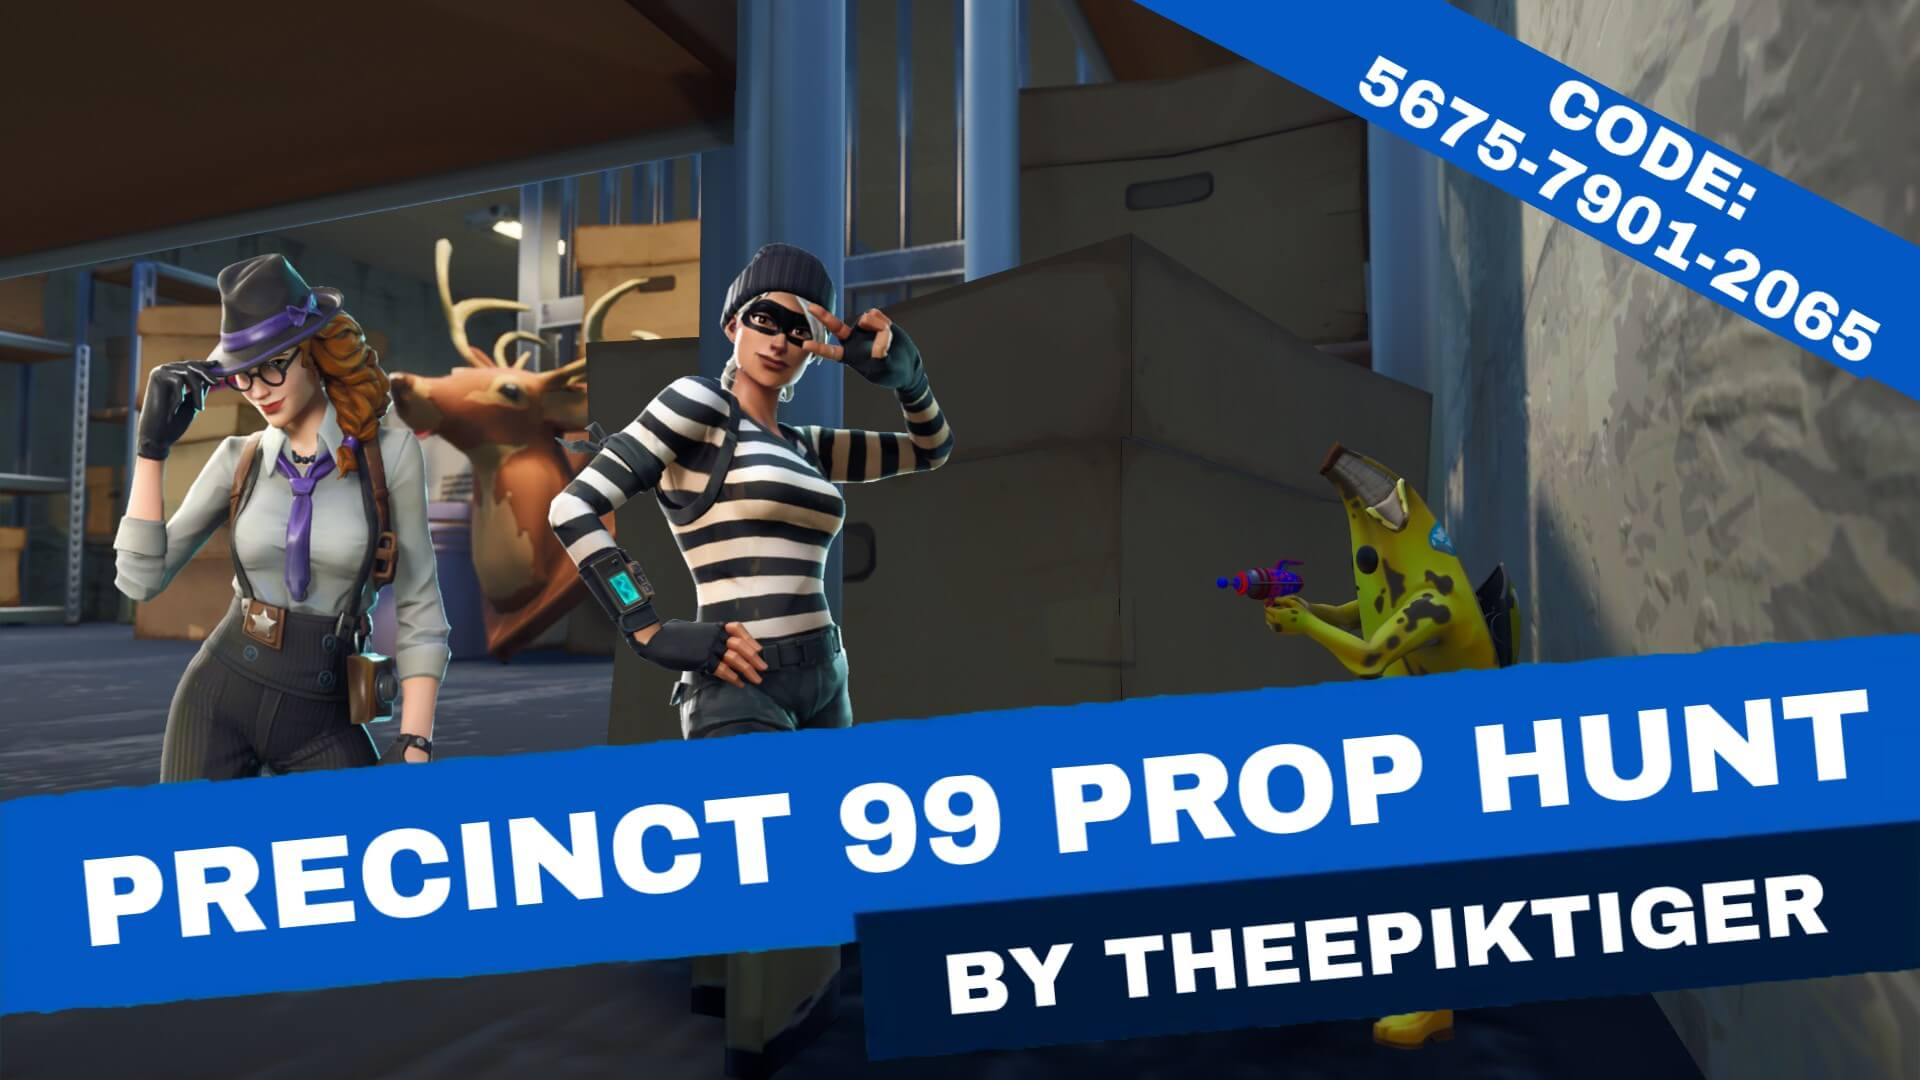 PRECINCT 99 PROP HUNT